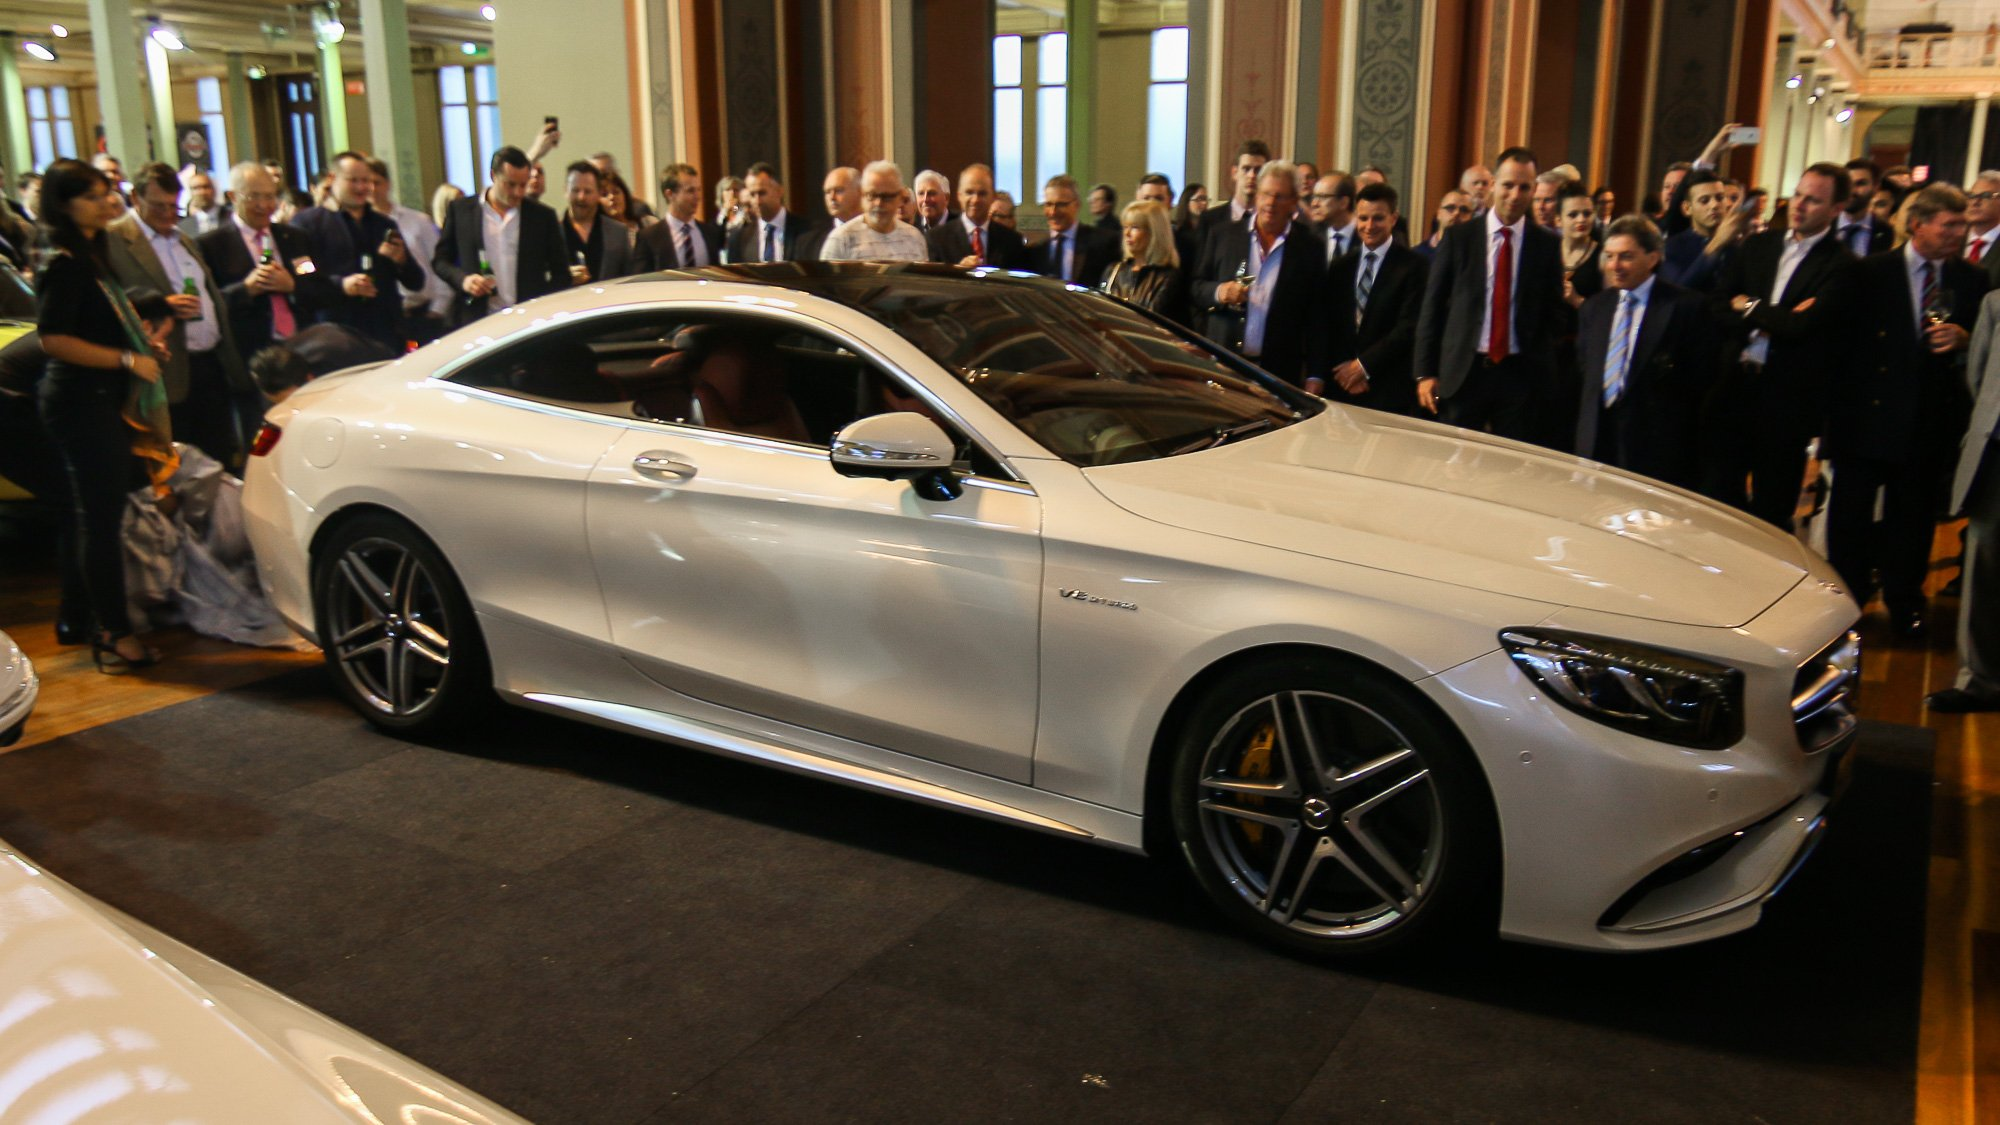 Mercedes Benz S Class Coupe Makes Australian Premiere